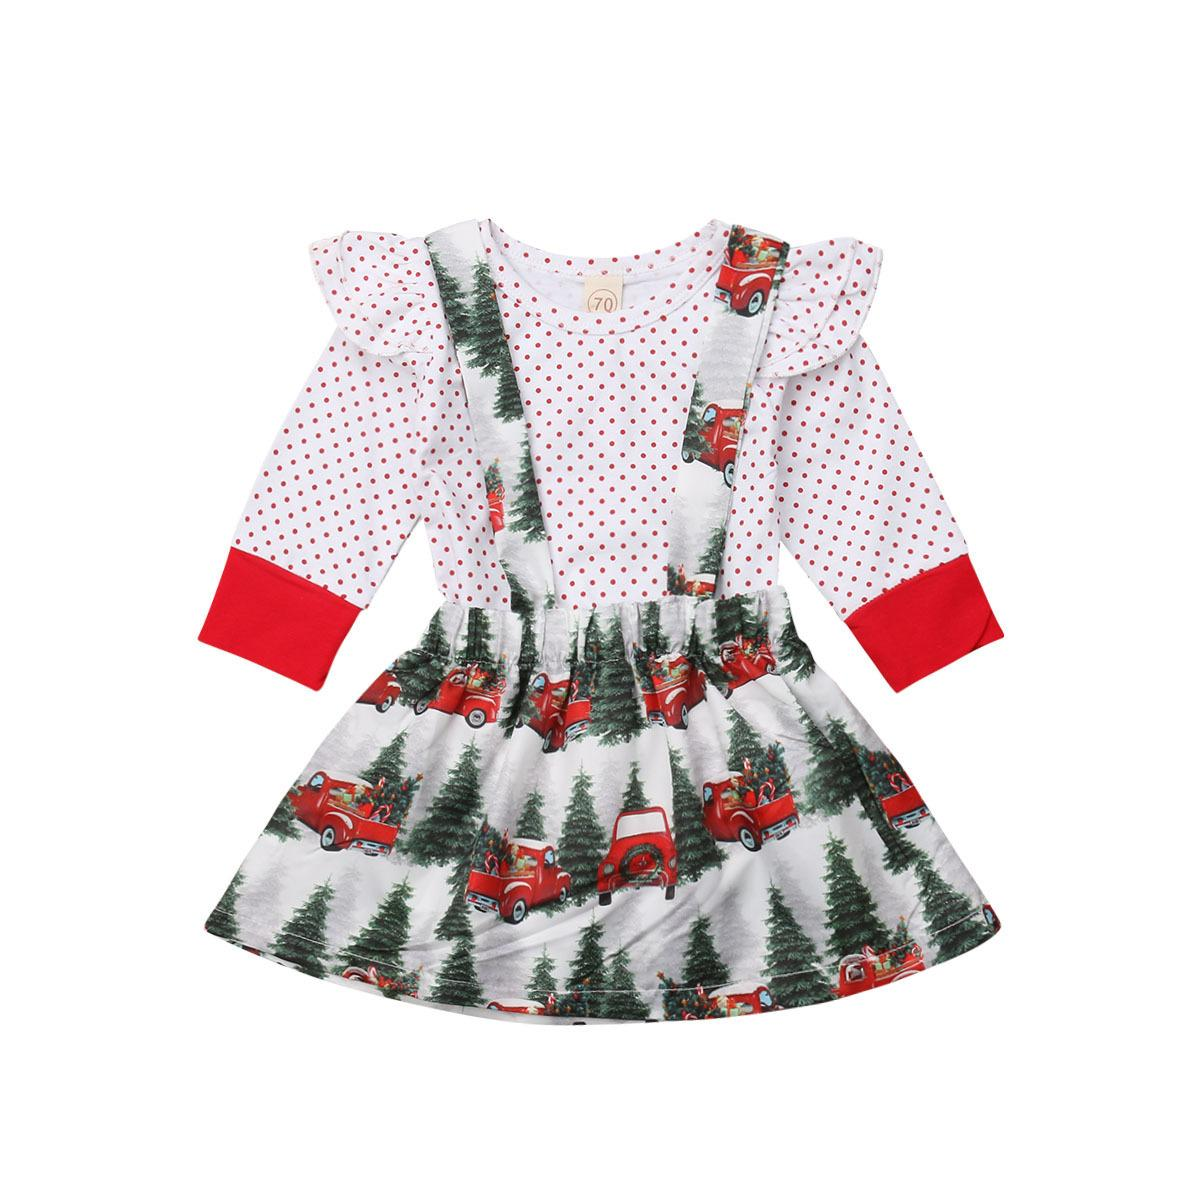 30eb6ea3723 2019 Newborn Kids Baby Girl Christmas Long Sleeve Romper Polka Dot Tops  Suspender Overall Dress Outfit Clothes Set From Ycqz3